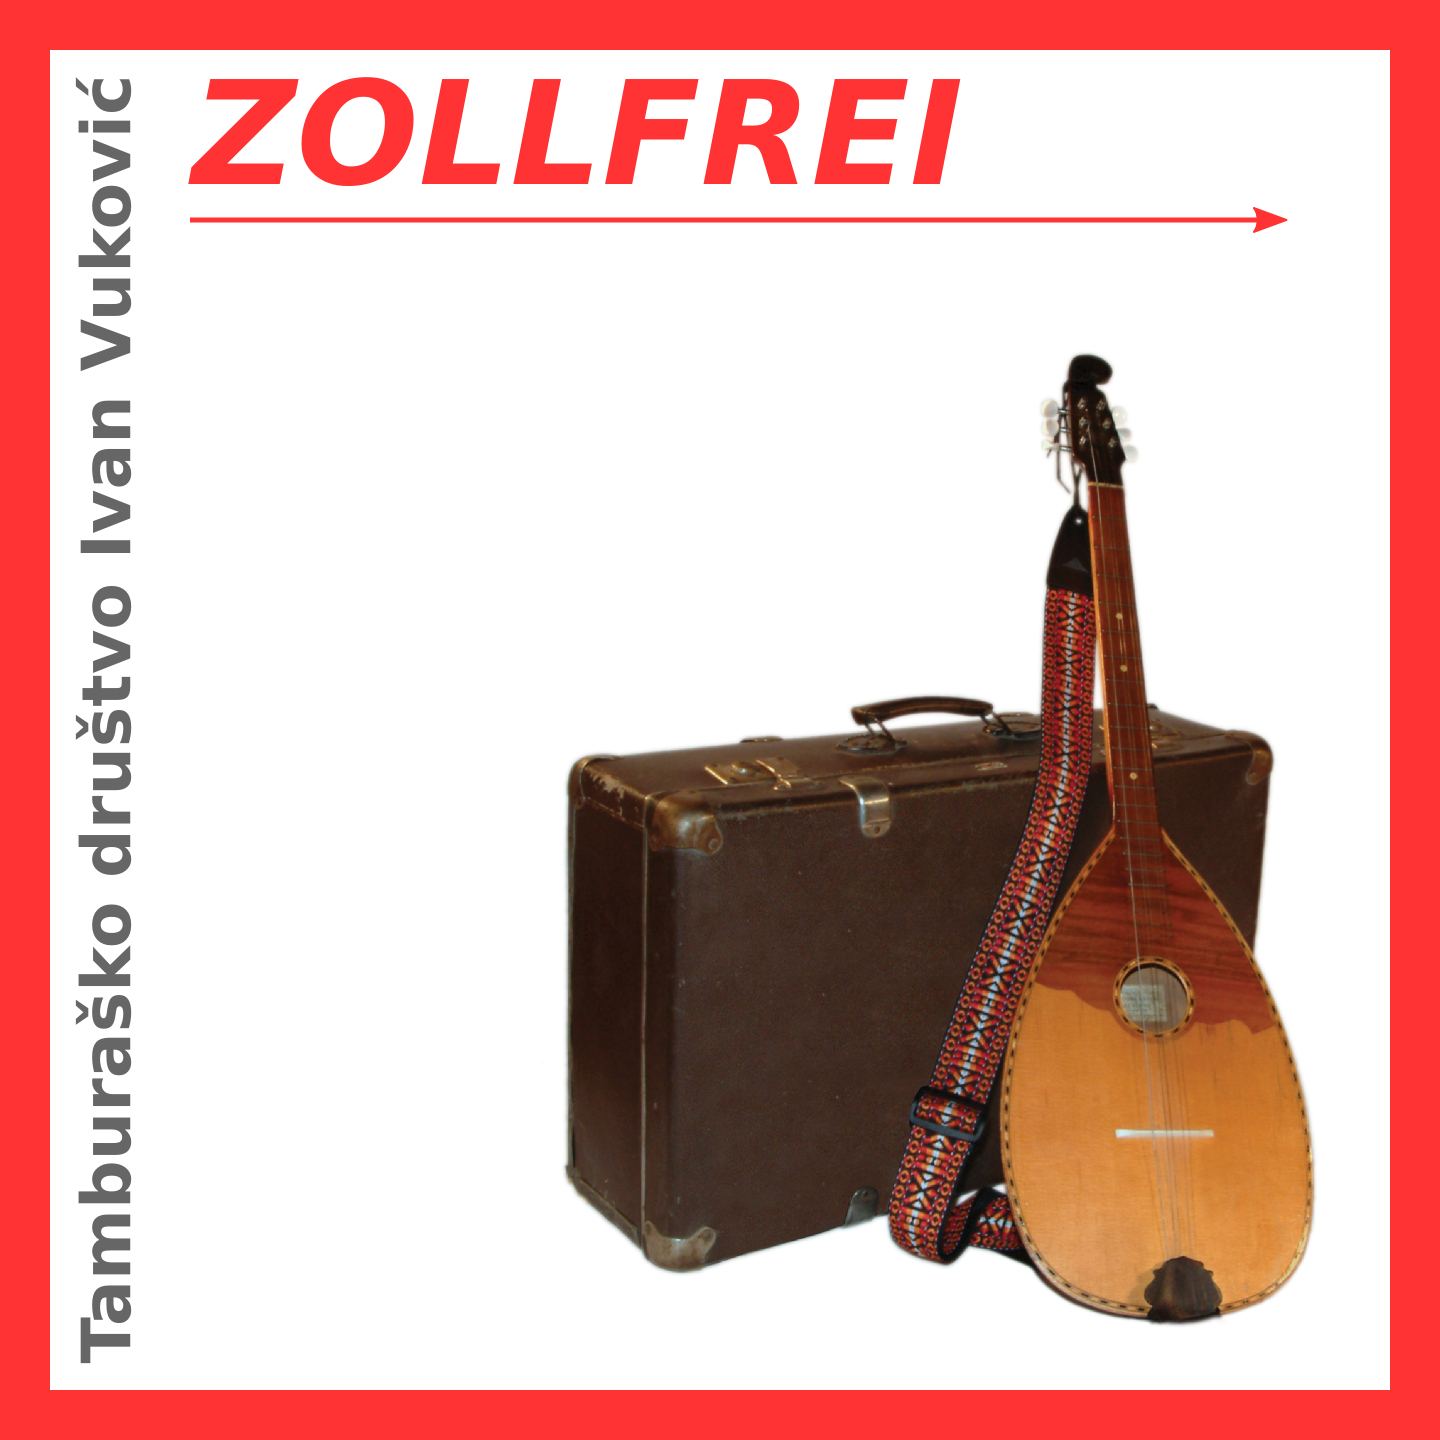 Album Zollfrei, Import